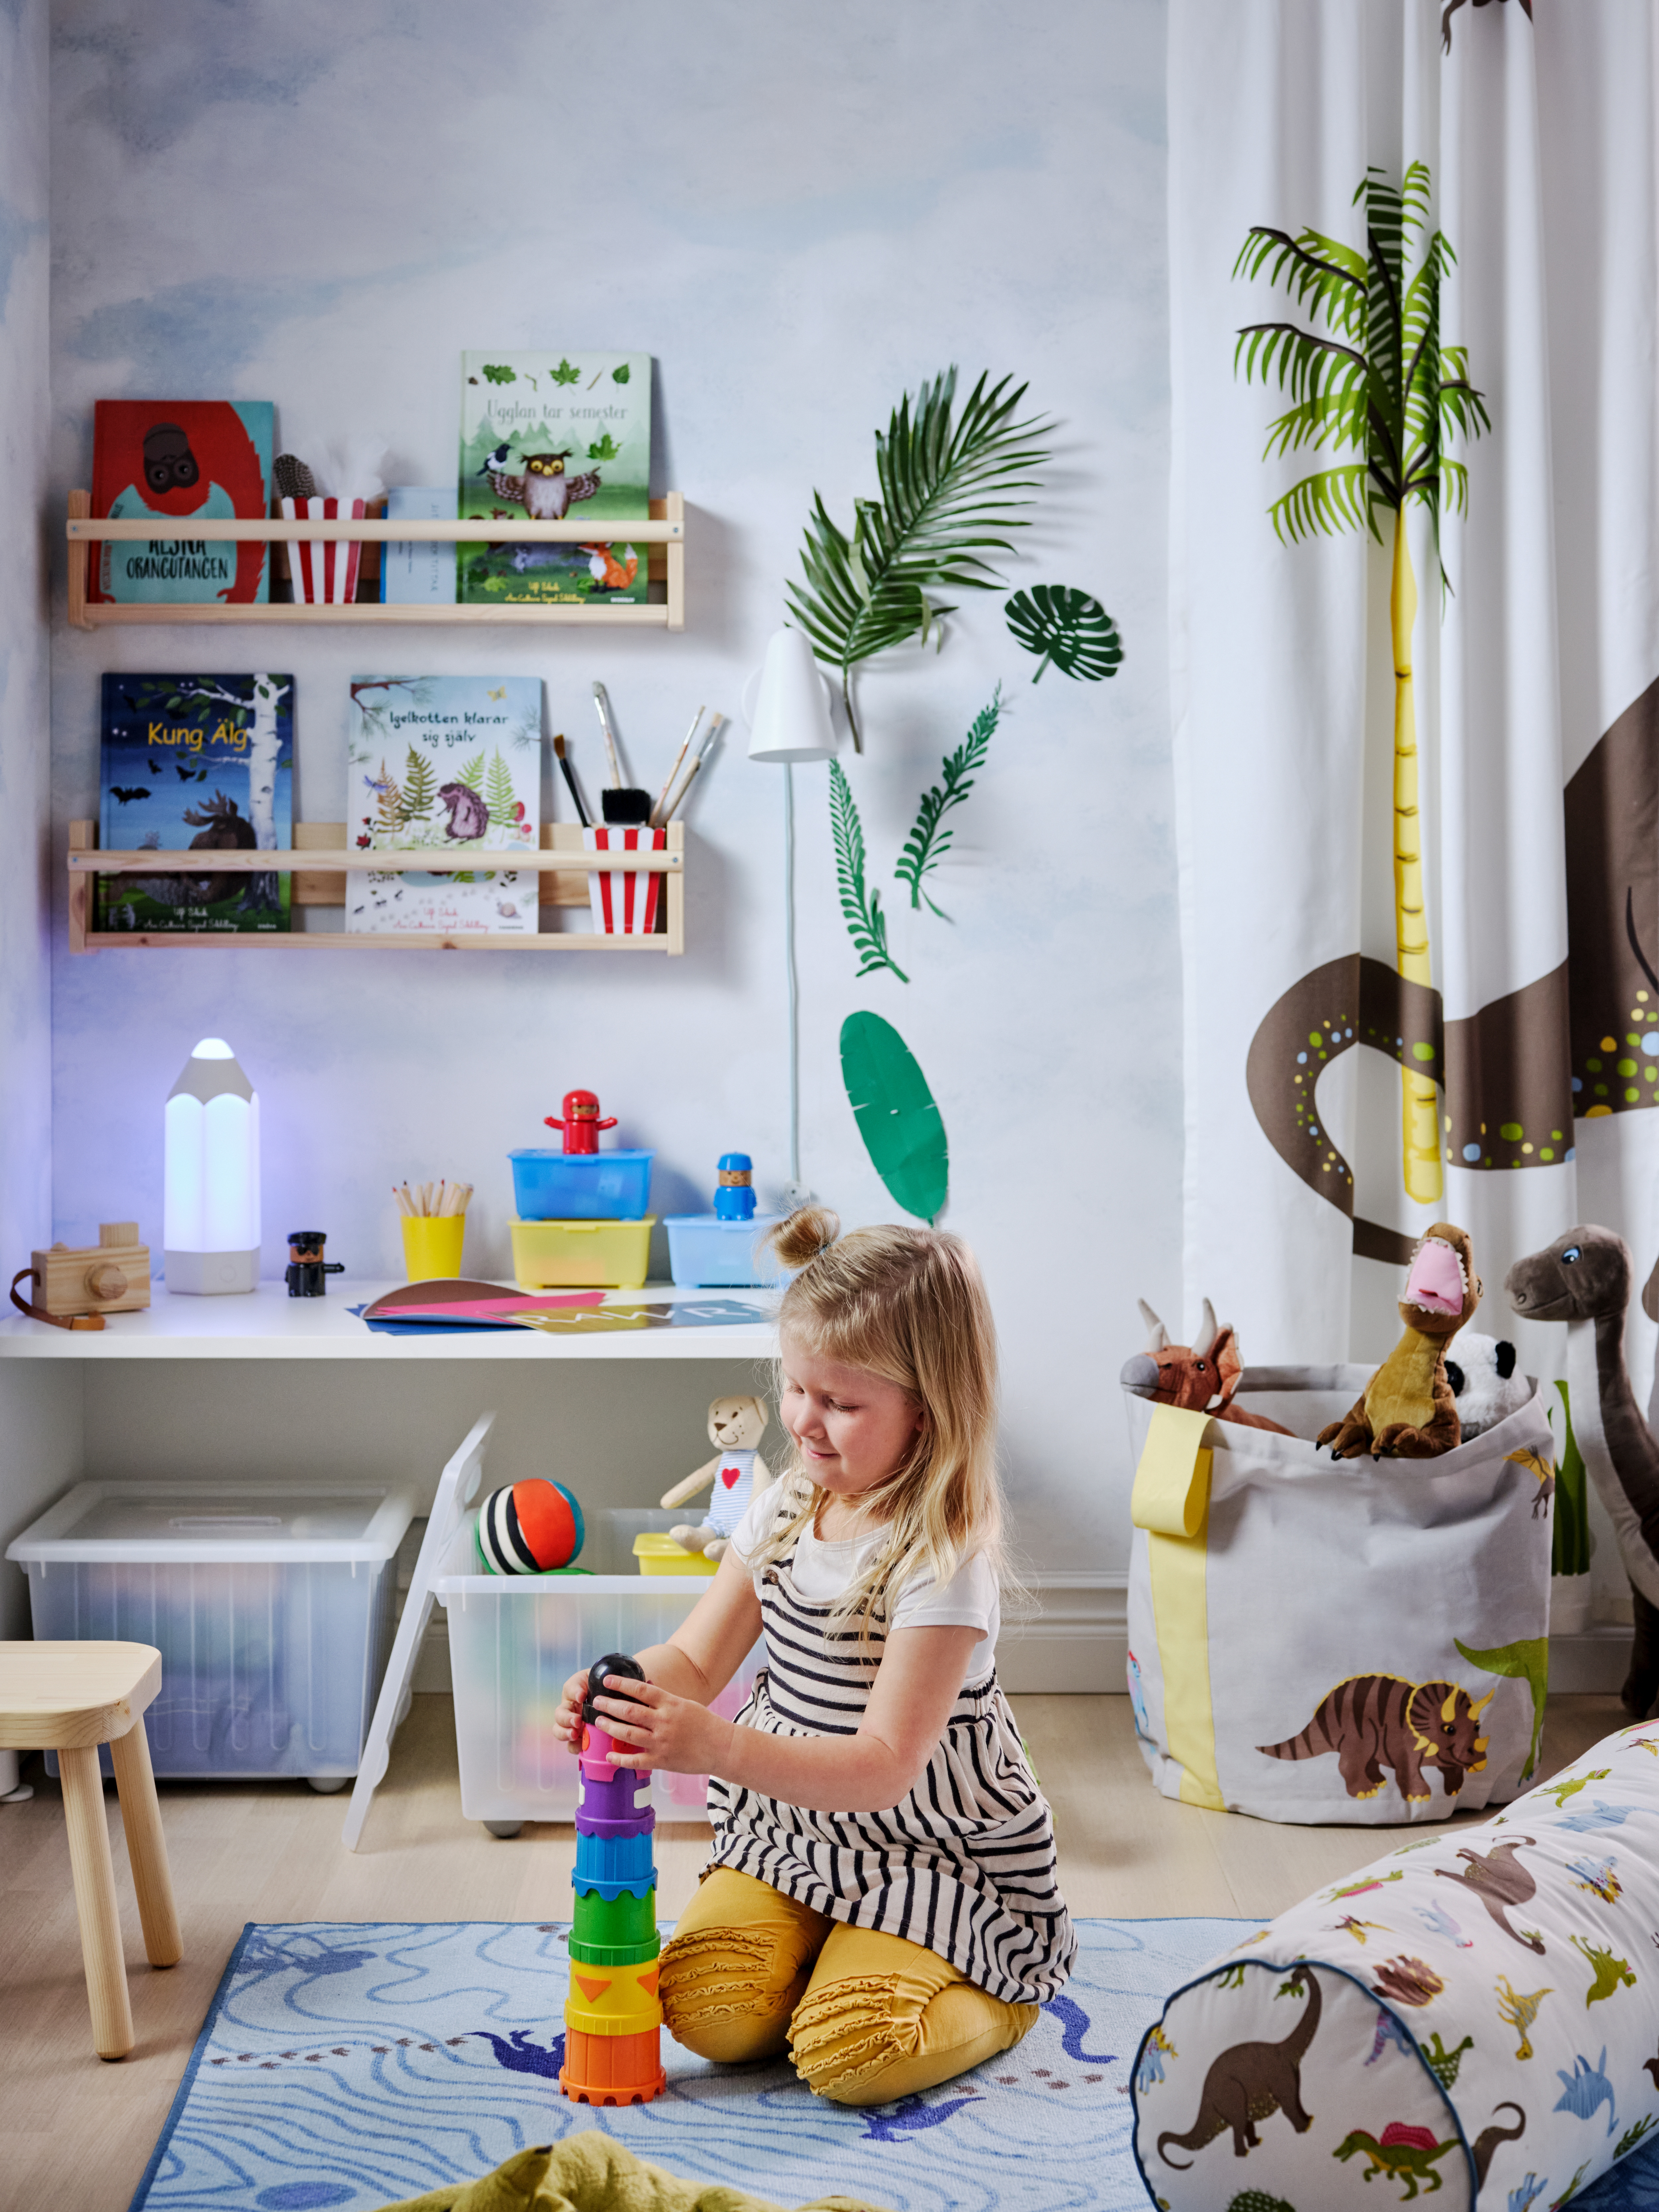 A girl plays with coloured blocks in a dinosaur-themed room. More toys are kept in VESSLA boxes and a JÄTTELIK bag.